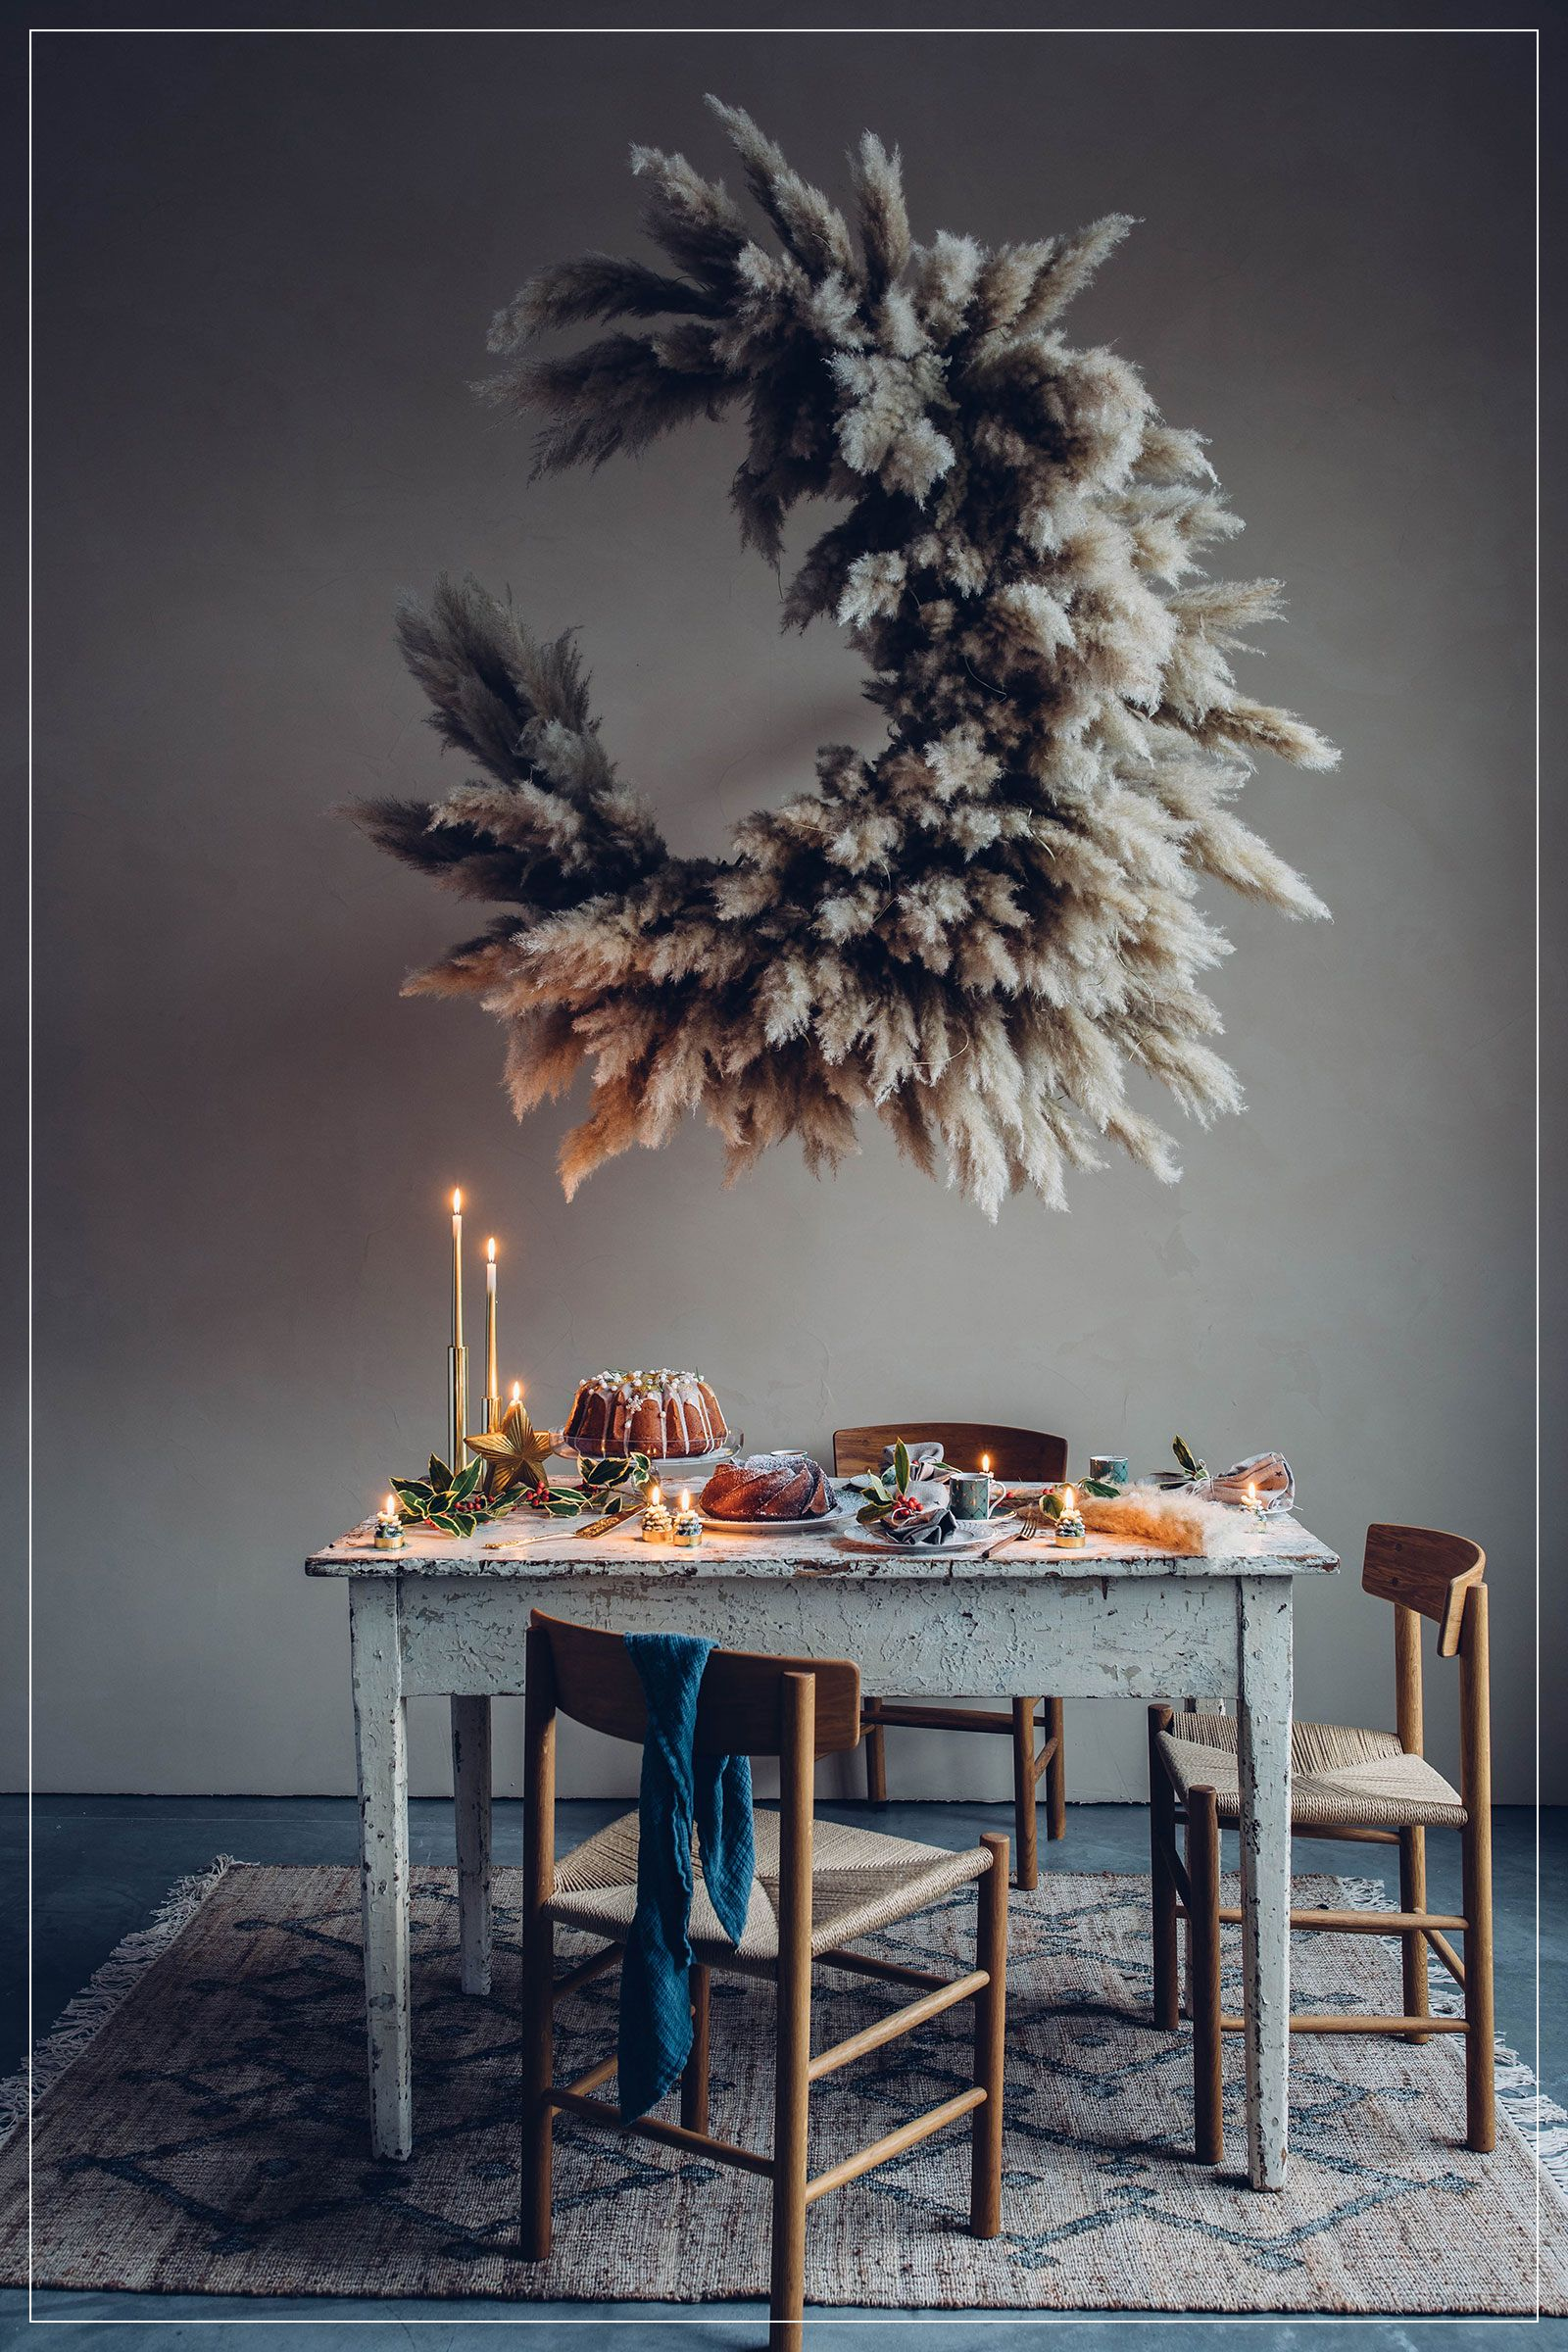 Zara Home New Holiday Editorial Collection 2018, Decor Tips ... Zara Home Furniture Online on zara clothing online, design your own home online, zara uk online, zara handbags online, game online, zara boots online, home goods furniture online, zara outlet online, zara shoes online, ralph lauren home online,